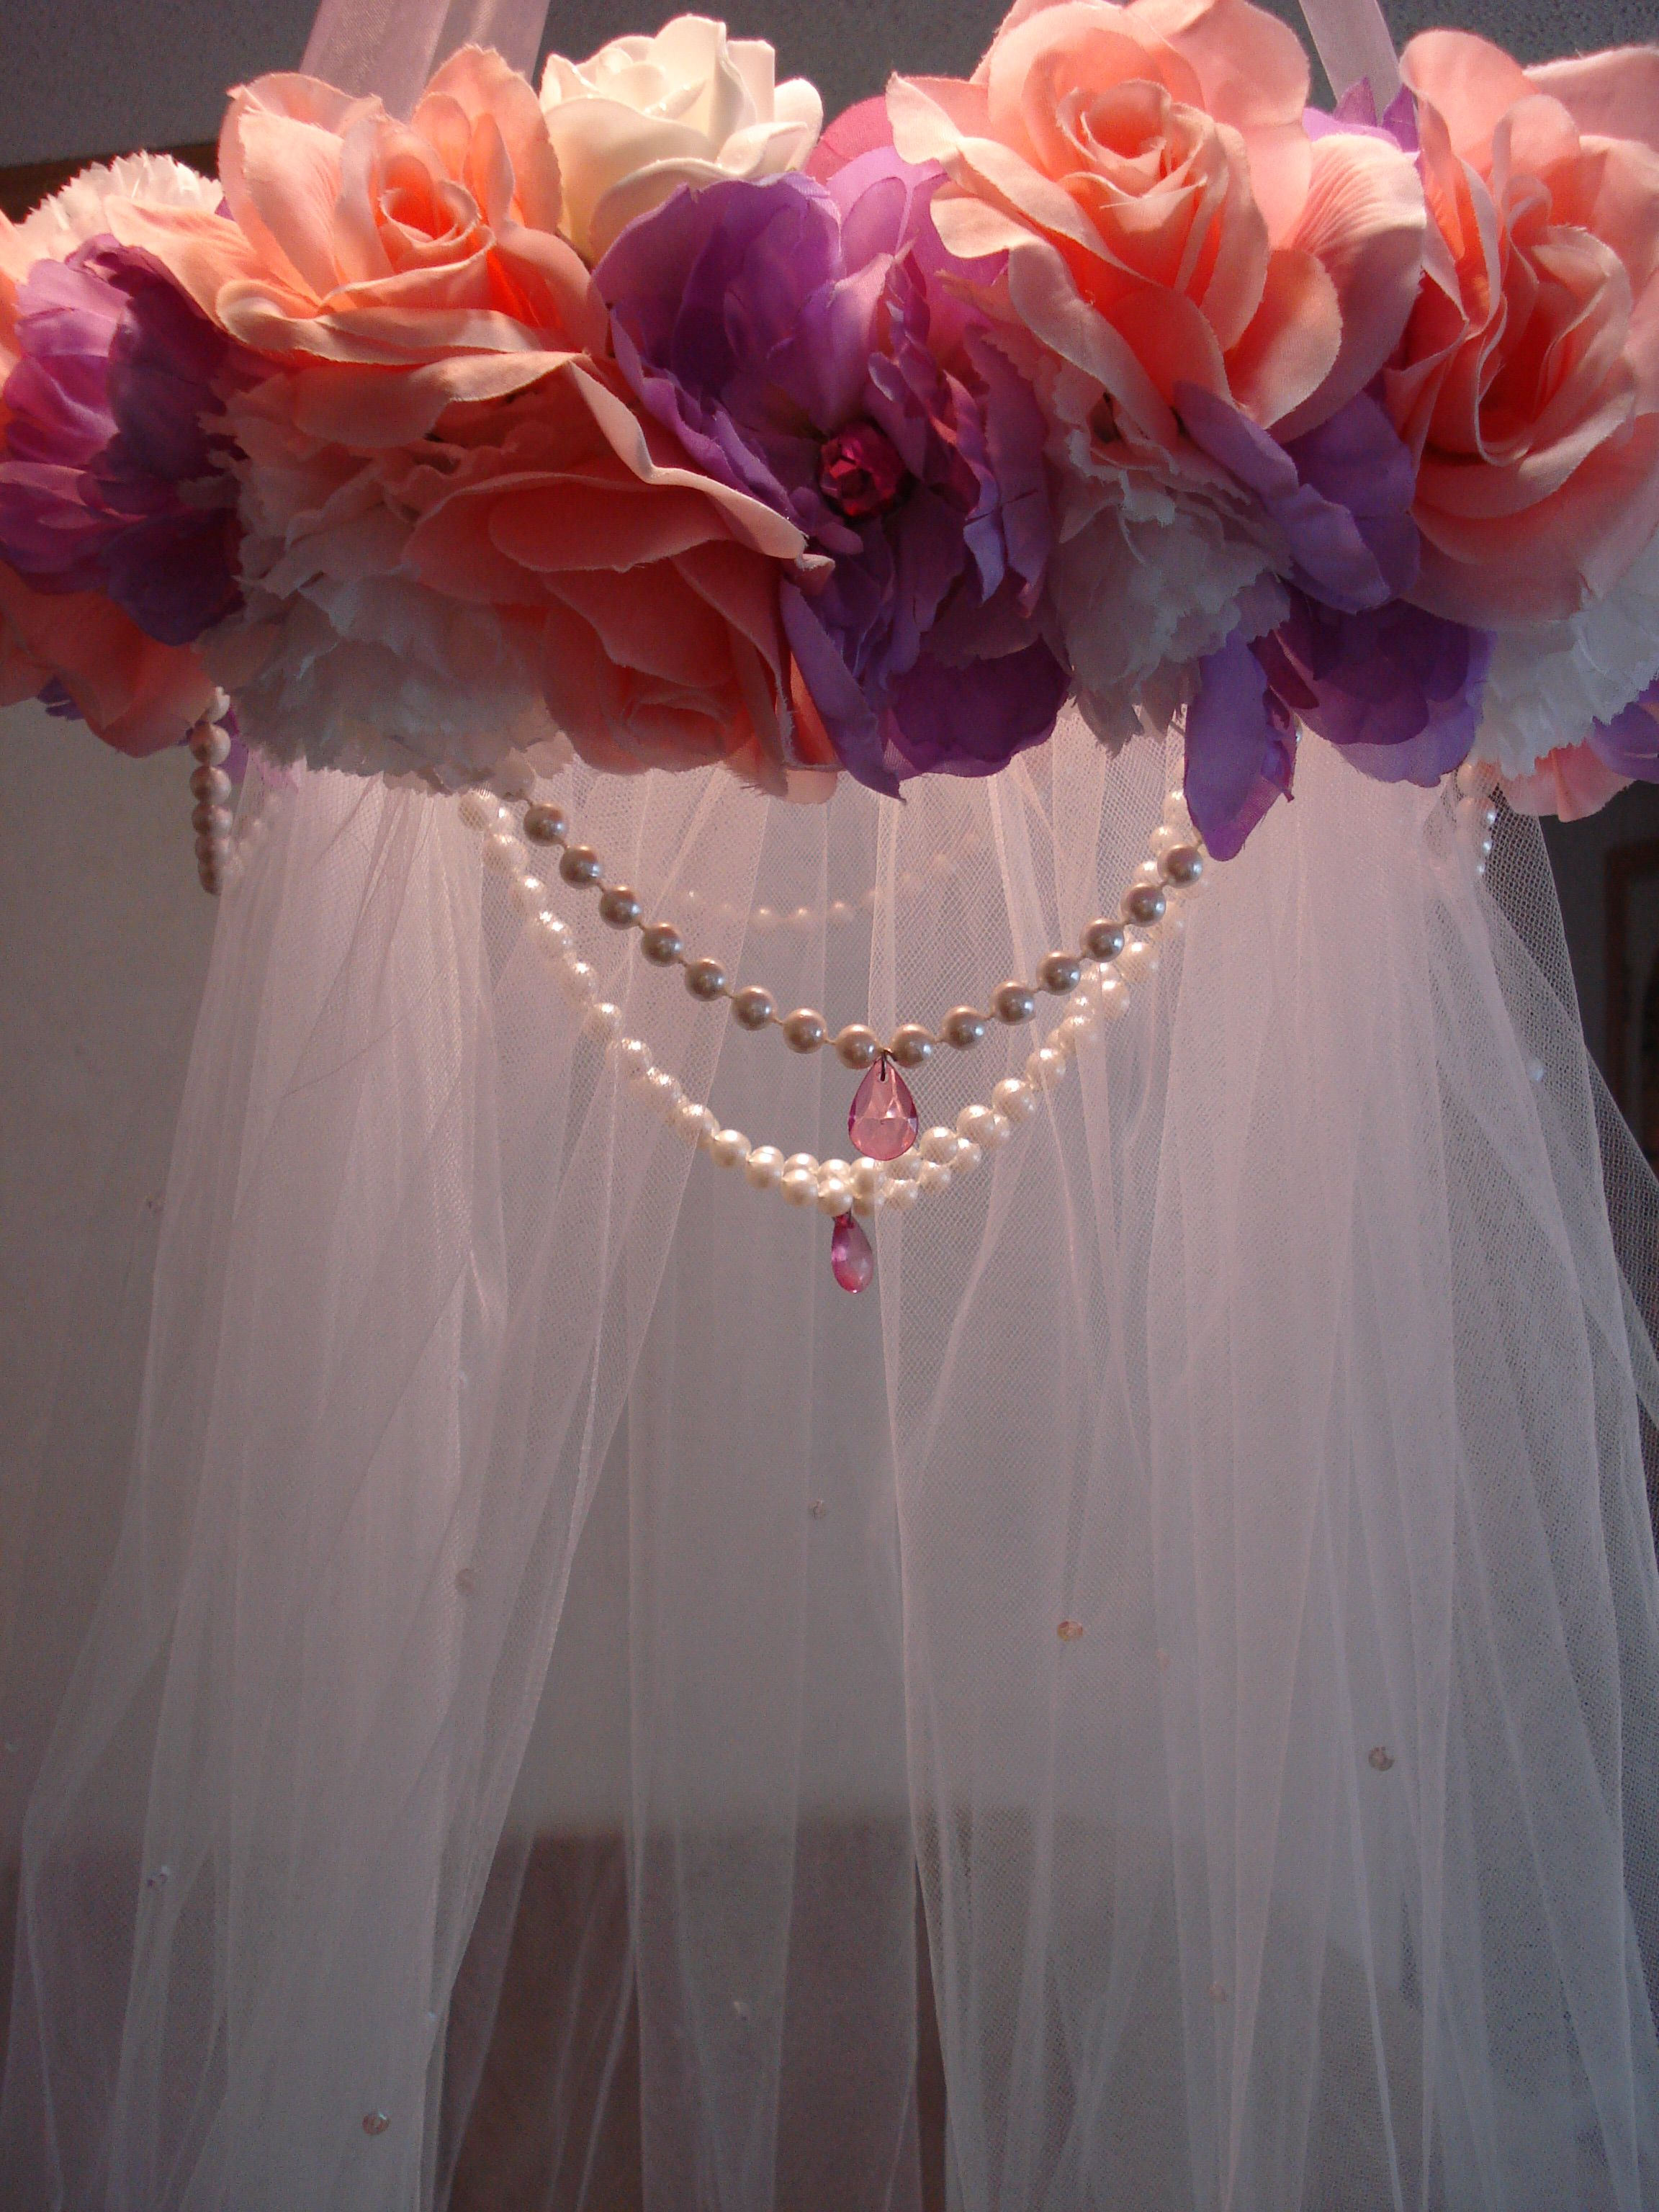 Diy Bed Canopy From Tulle Fake Flowers Dollar Store Pearl